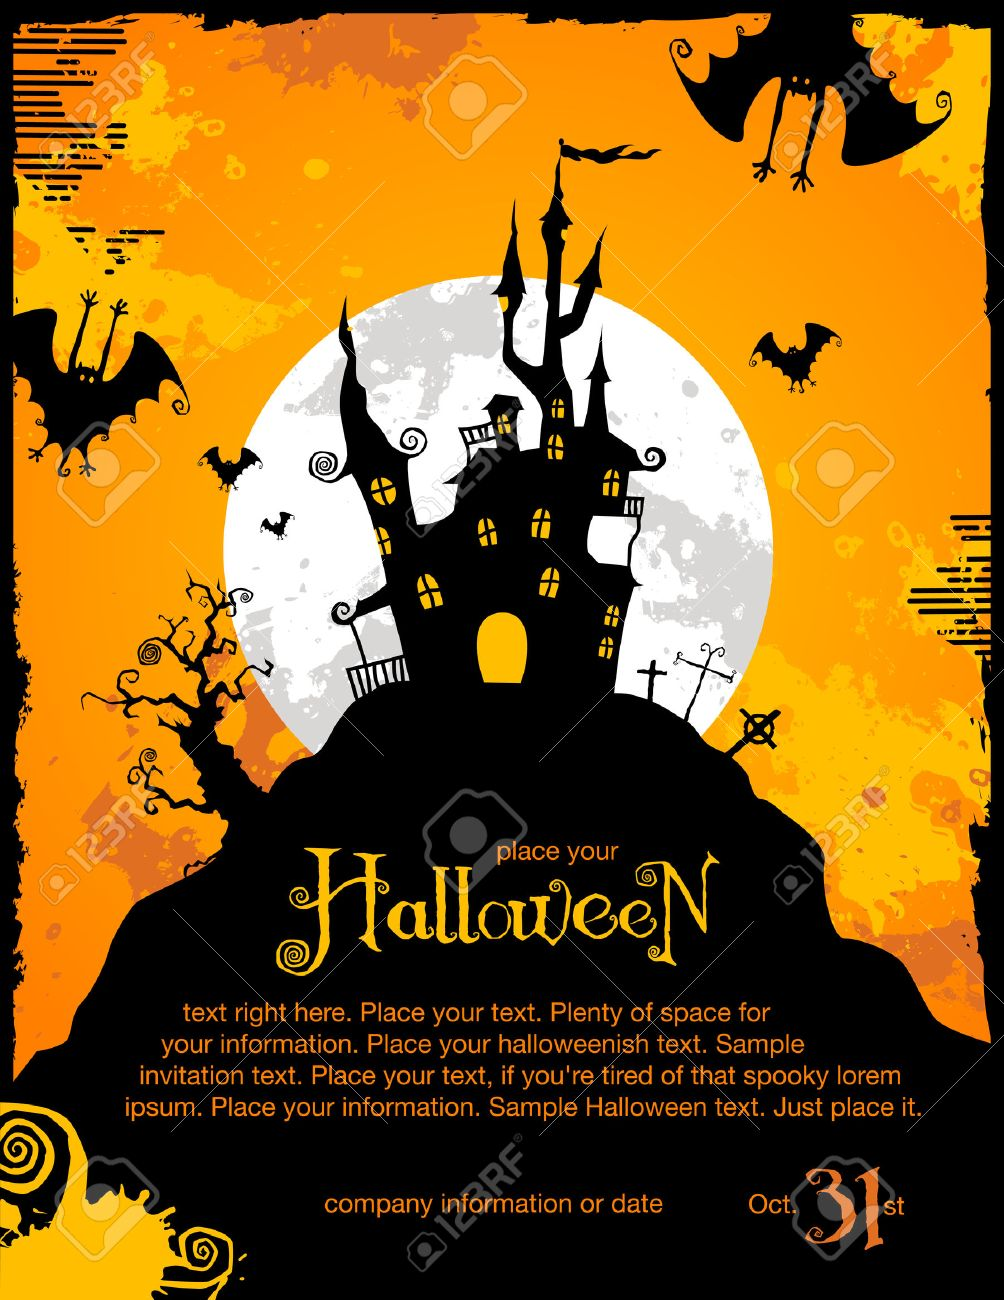 Halloween invitation or background with spooky castle and bats halloween invitation or background with spooky castle and bats stock vector 5785215 stopboris Gallery